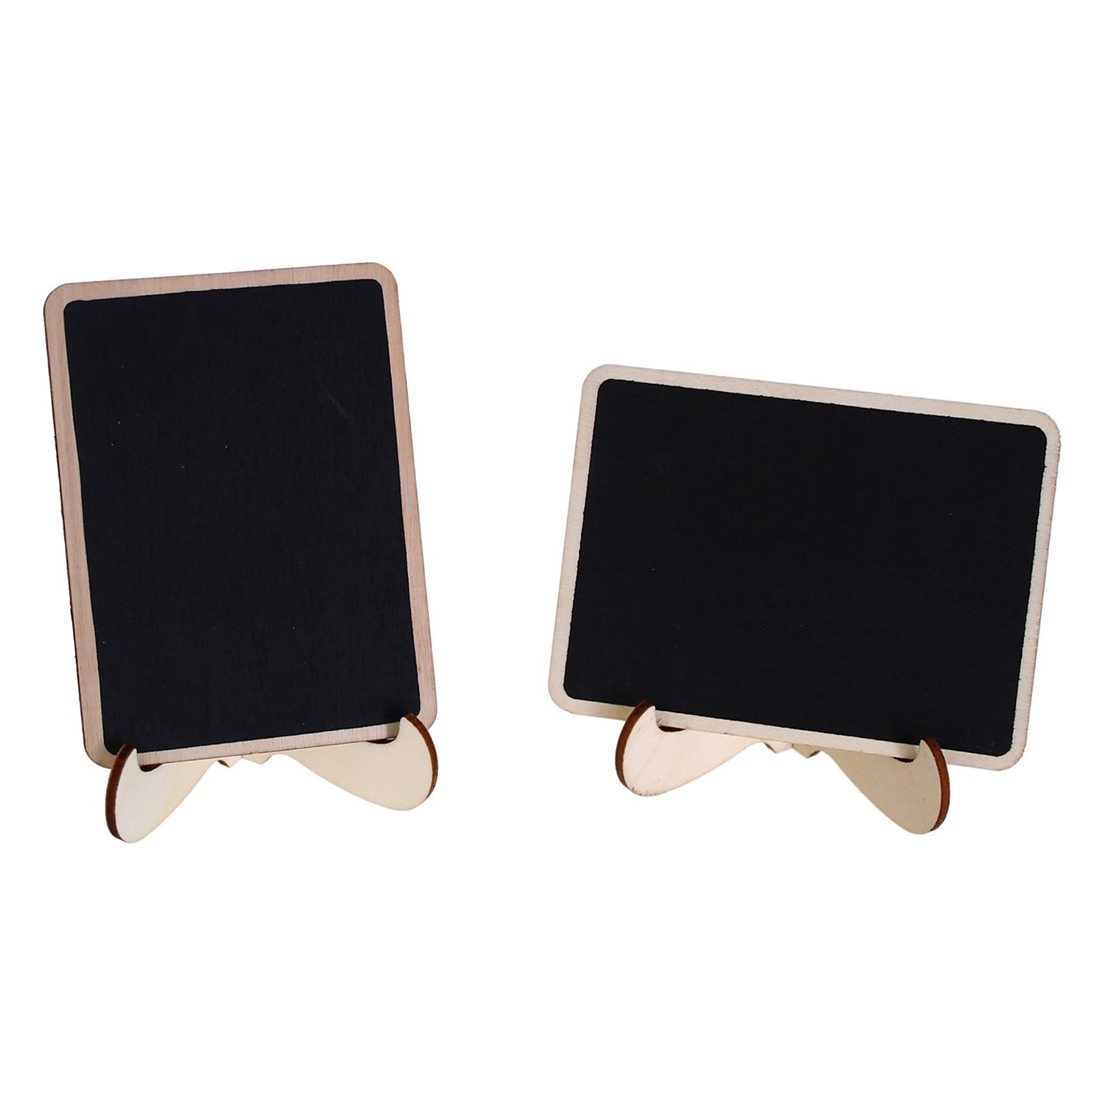 Mini Chalkboard Place Cards with Easel Stand and Chalk for Wedding, Parties, Table Top Numbers, Food Signs